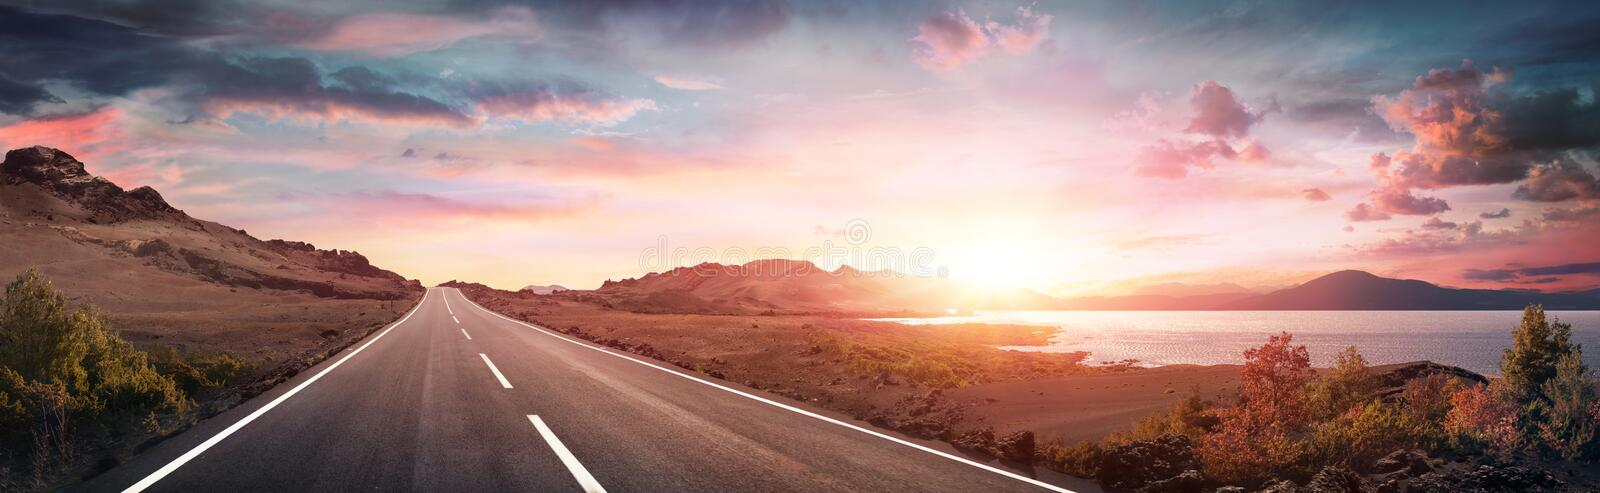 Road Trip - Scenic Landscape With Highway. At Sunrise royalty free stock images